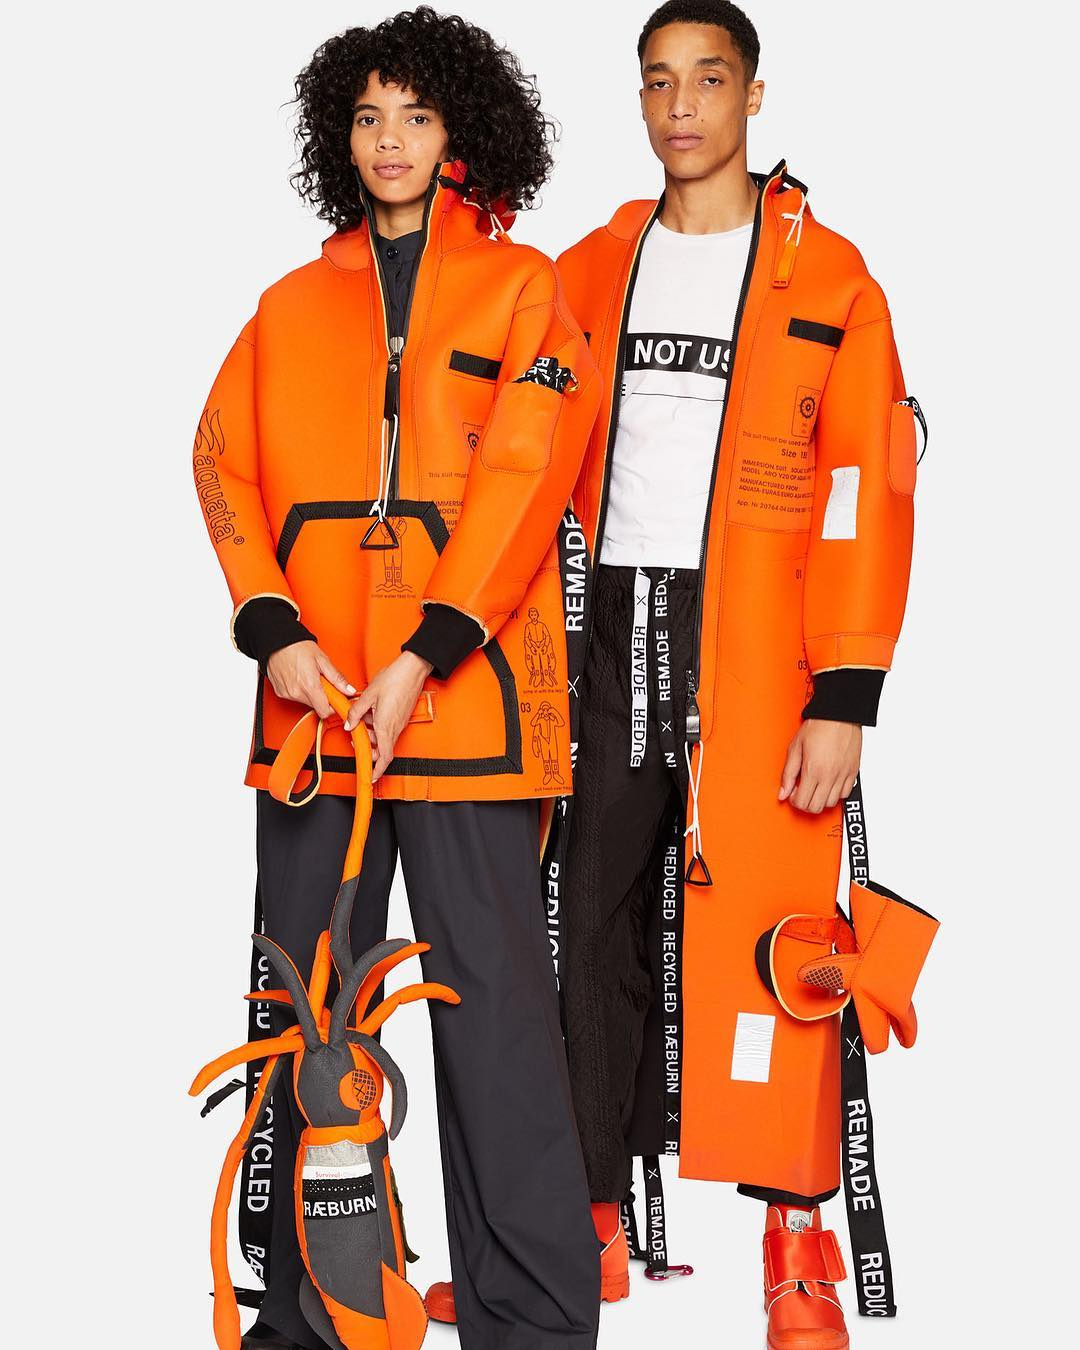 AW18 IMMERSE  collection. Immersion suits with functional elements to prepare wearer for unpredictable sea conditions.